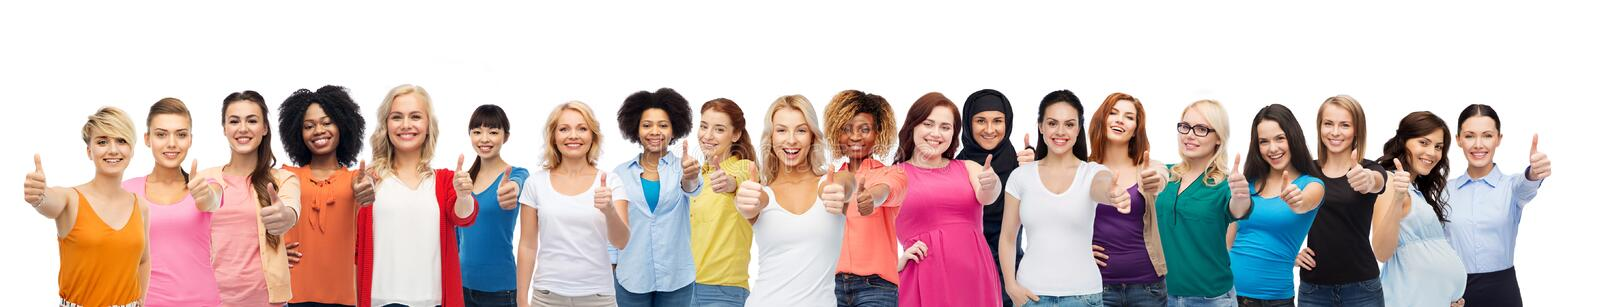 International group of women showing thumbs up royalty free stock photos